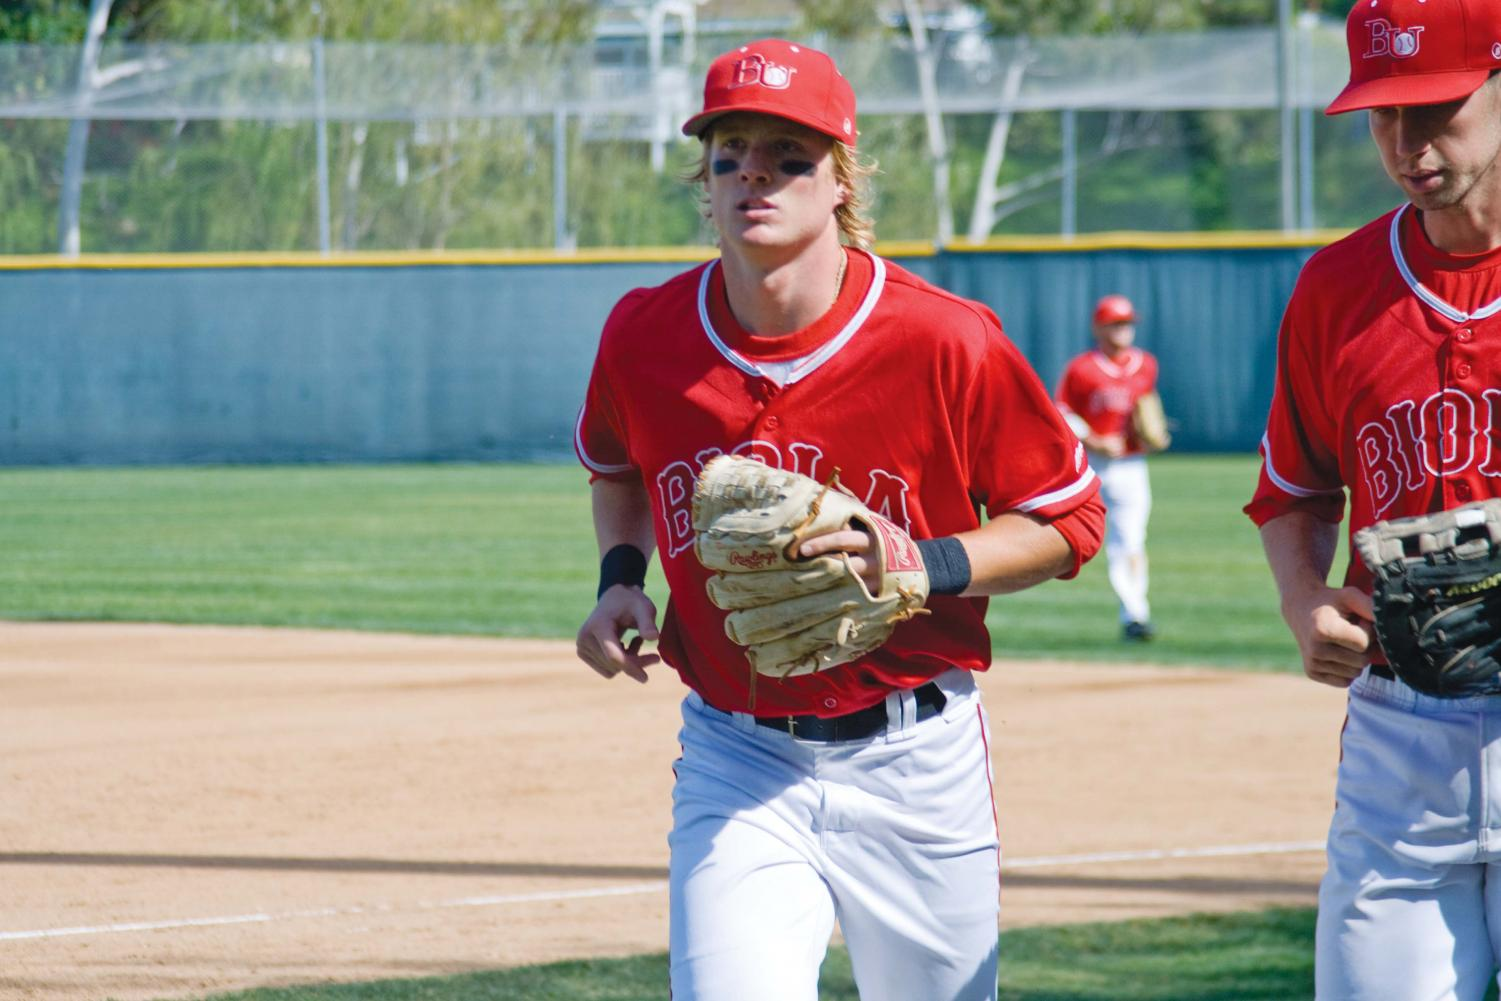 Serving as an integral part of Biola's baseball team, junior Hawkins Gebbers has gained the respect and admiration of his coaches and teammates.  He attributes his drive and work ethic to his family and hometown.